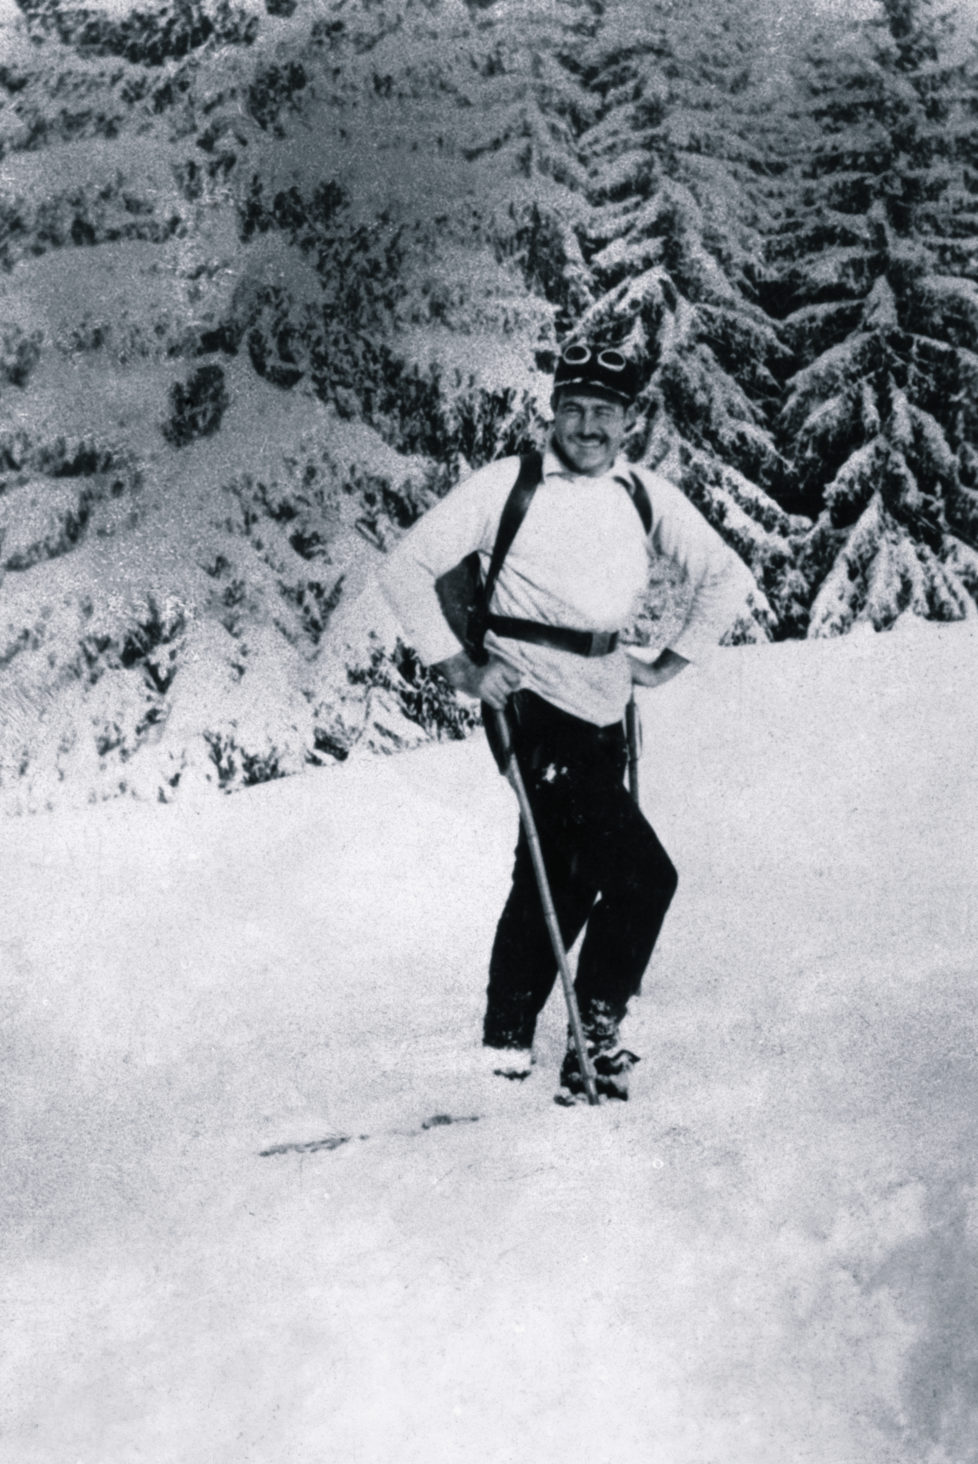 (Original Caption) Ernest Hemingway photography during at Gstaad, Switzerland.